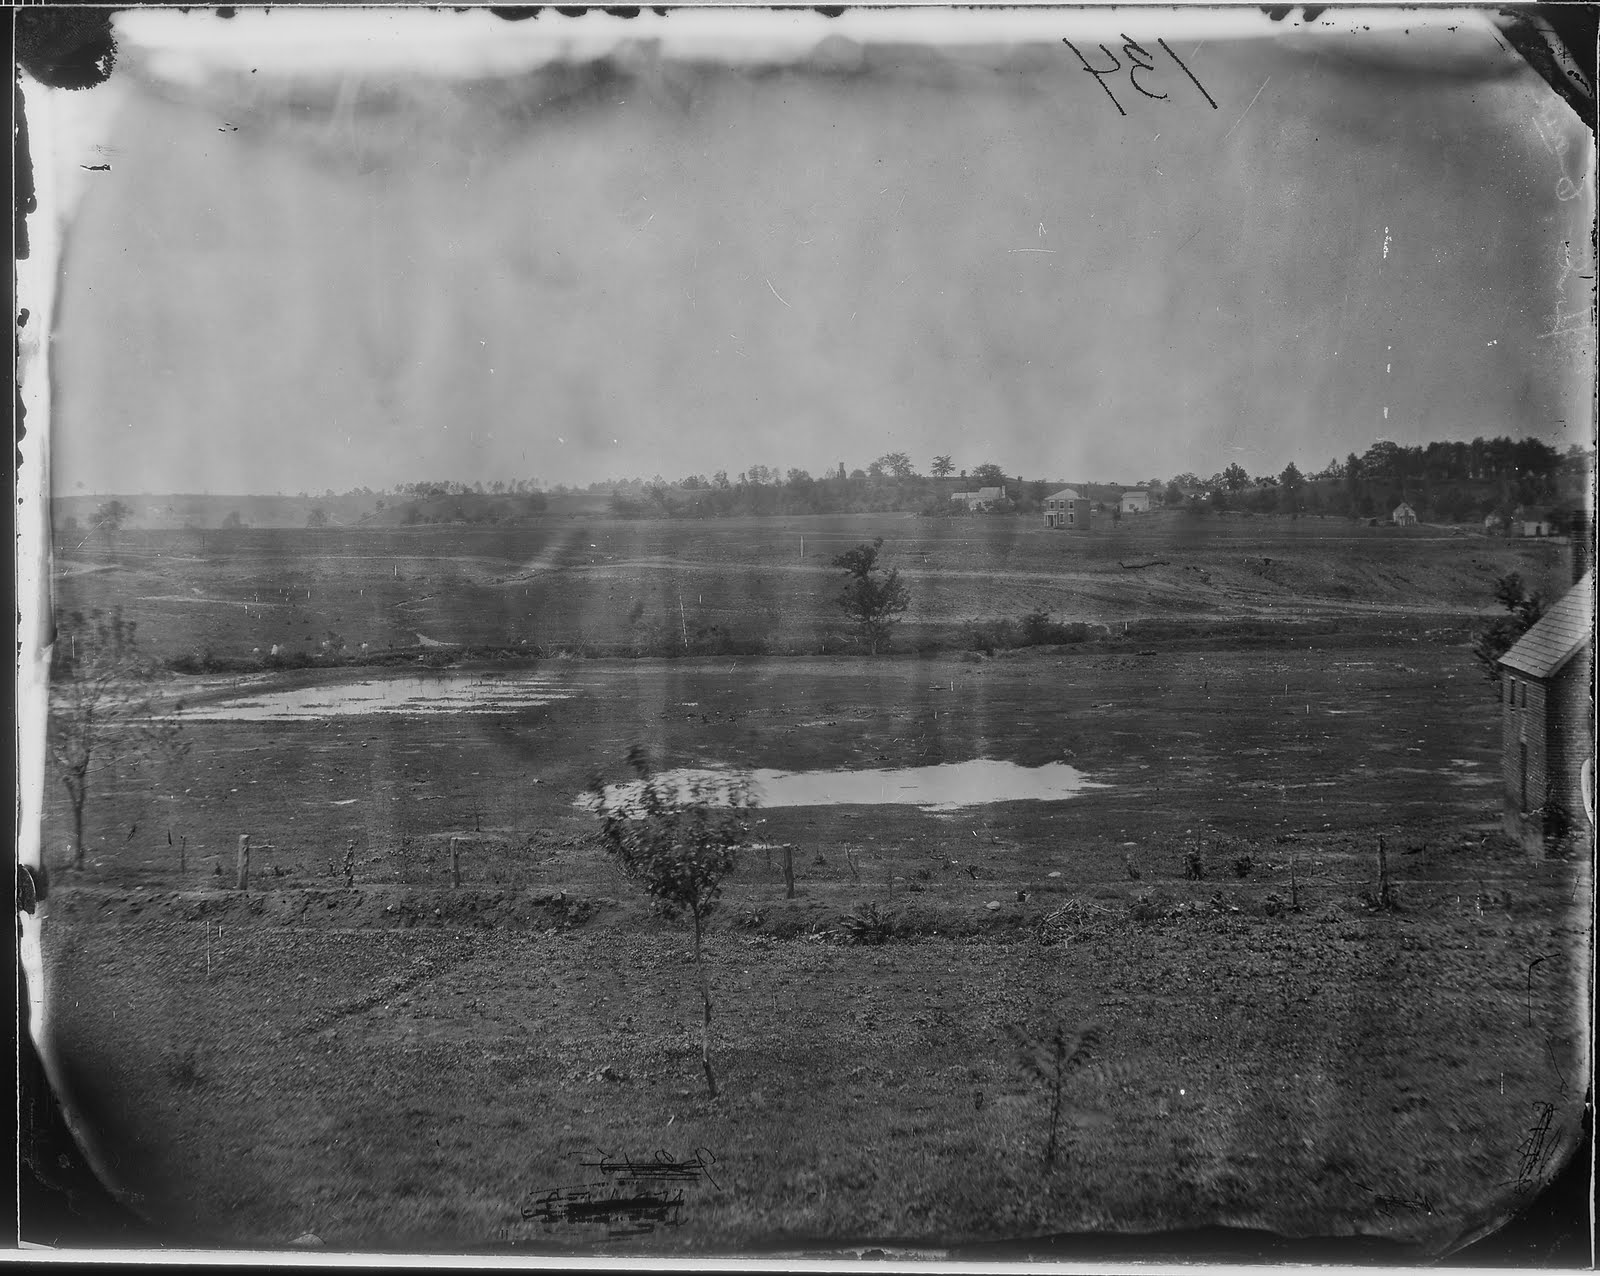 The Canal Ditch during the Civil War can be seen in the middle ground as a darker spot on the plain.Photo credit: John Cummings, http://spotsylvaniacw.blogspot.com/2011/07/gross-what-are-they-doing-latrine-at.html